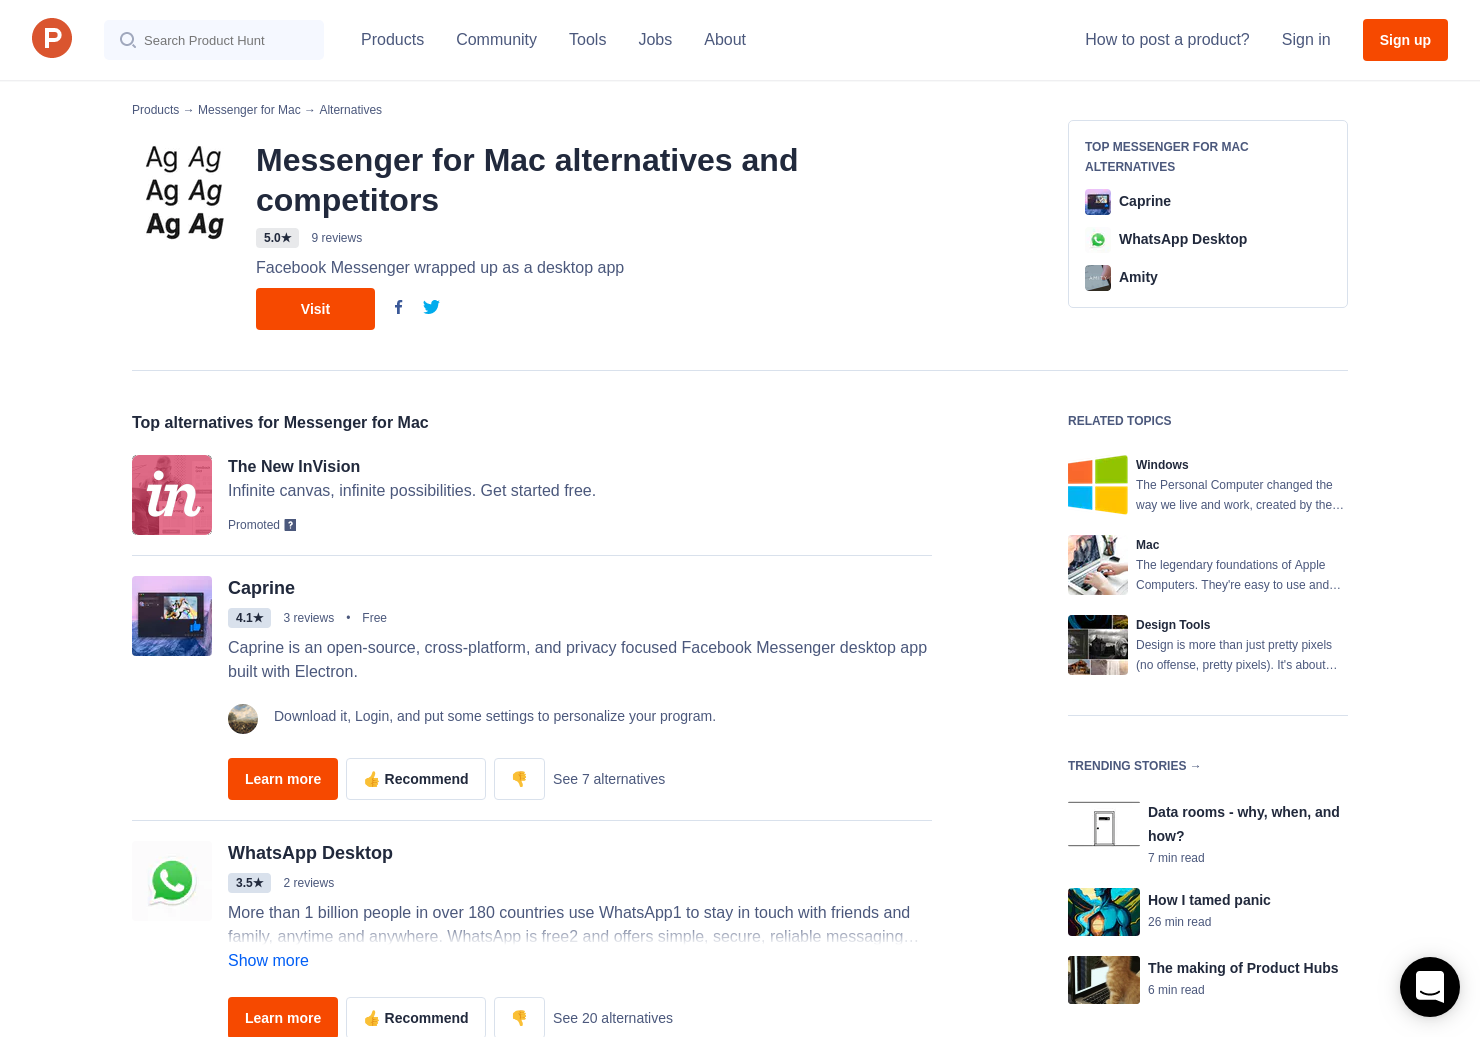 10 Alternatives to Messenger for Mac | Product Hunt